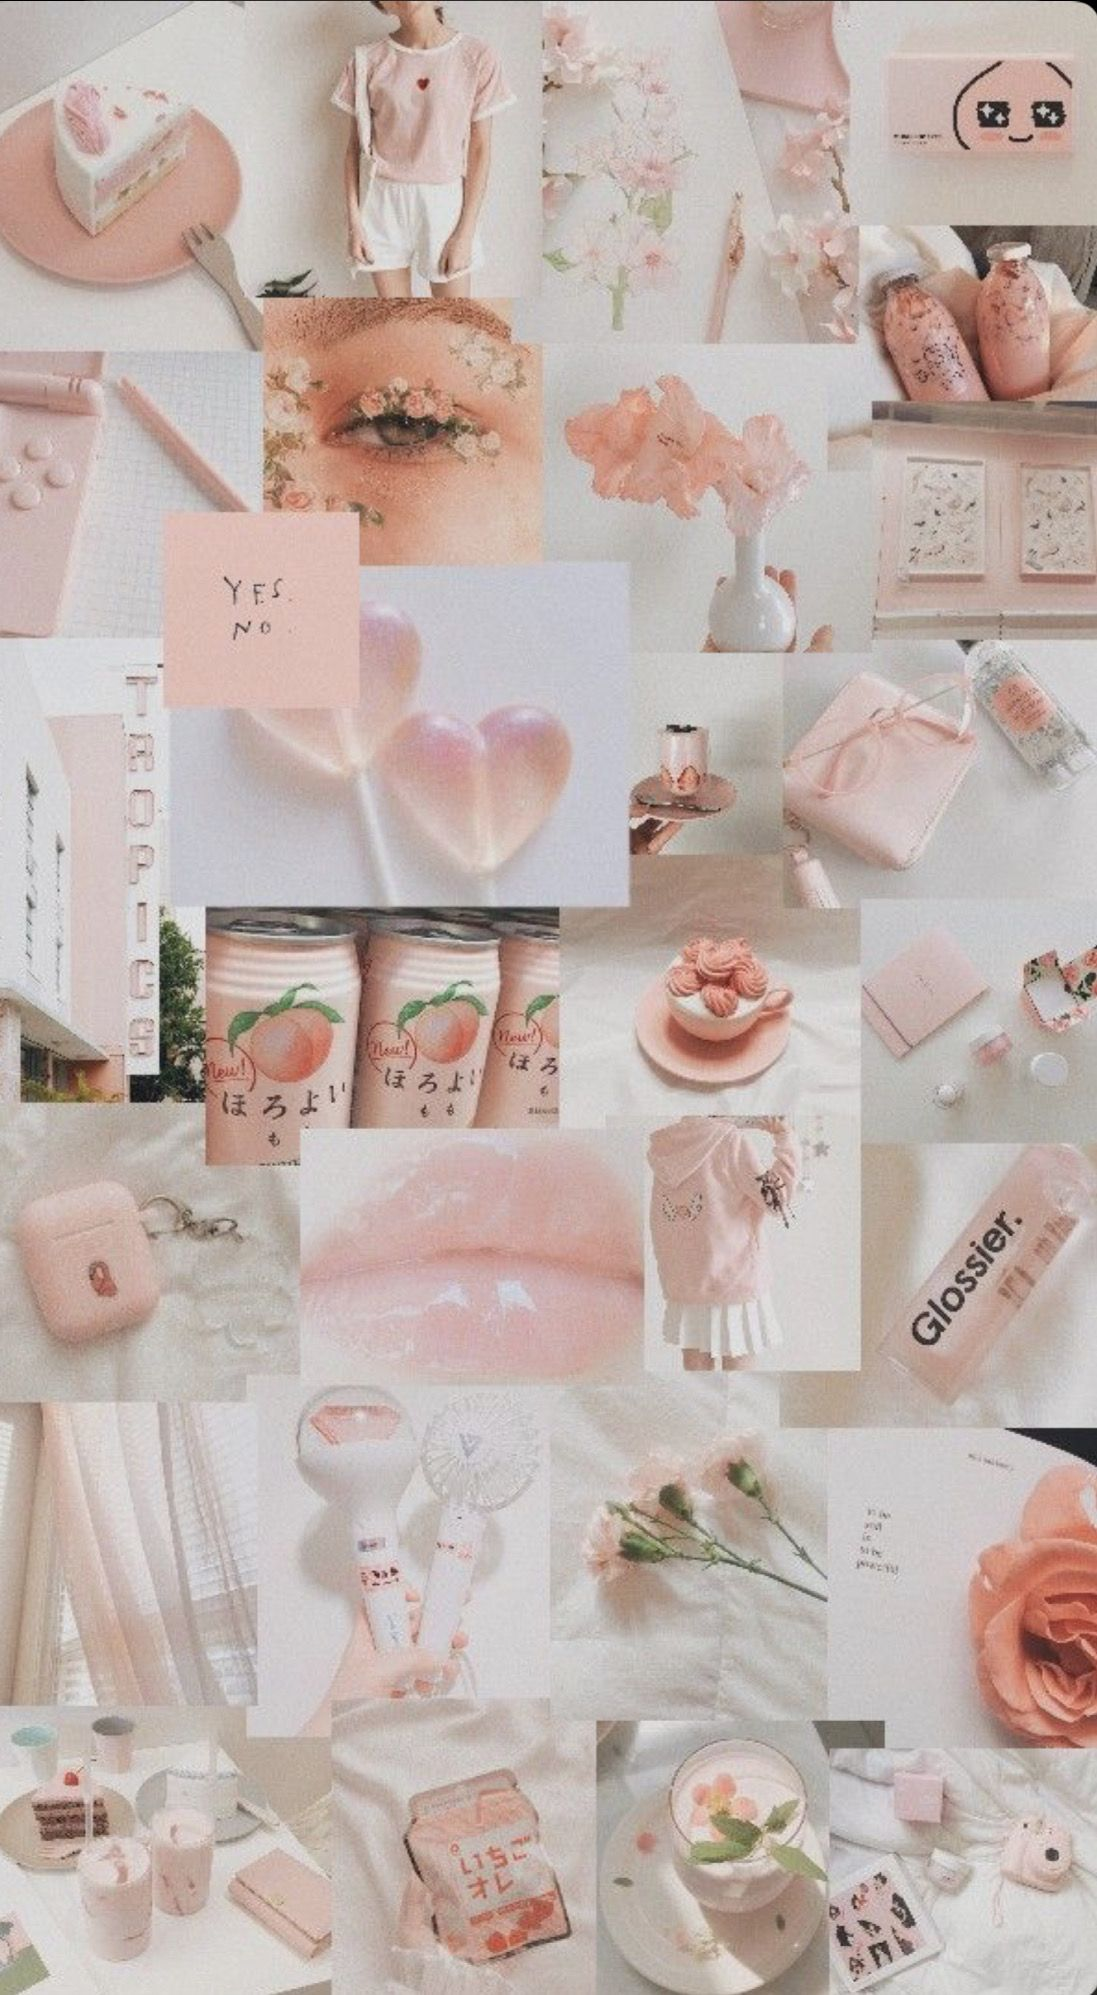 Peach Colour Aesthetic Wallpapers Wallpaper Cave Download and use 10,000+ pastel background stock photos for free. peach colour aesthetic wallpapers